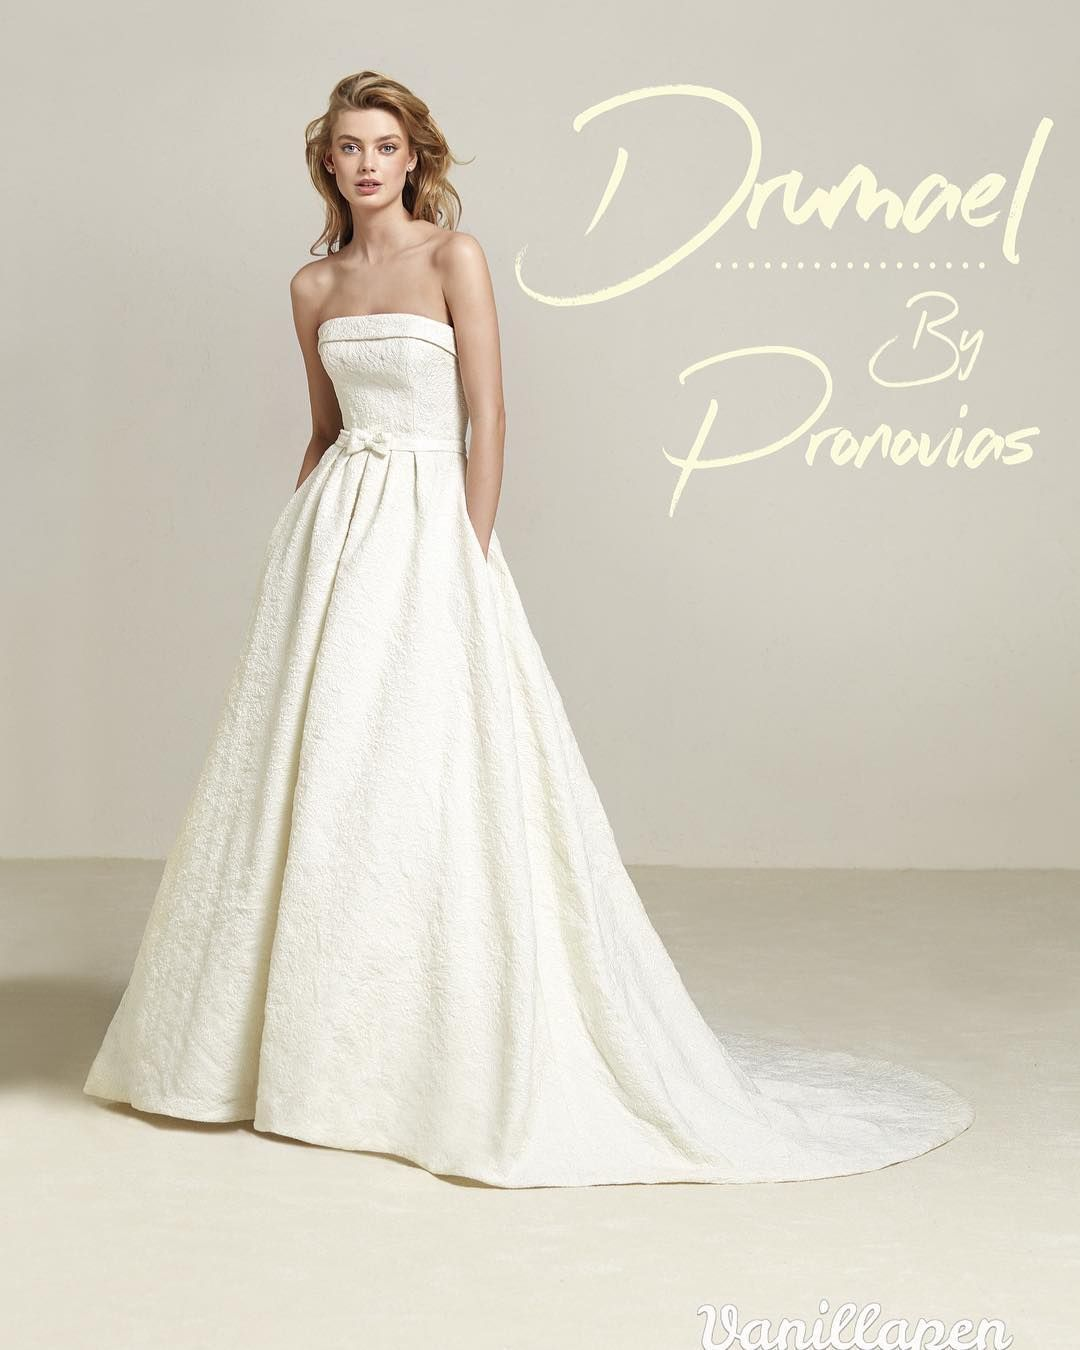 NEW DRESS ALERT! We are thrilled to have yet another new Pronovias ...